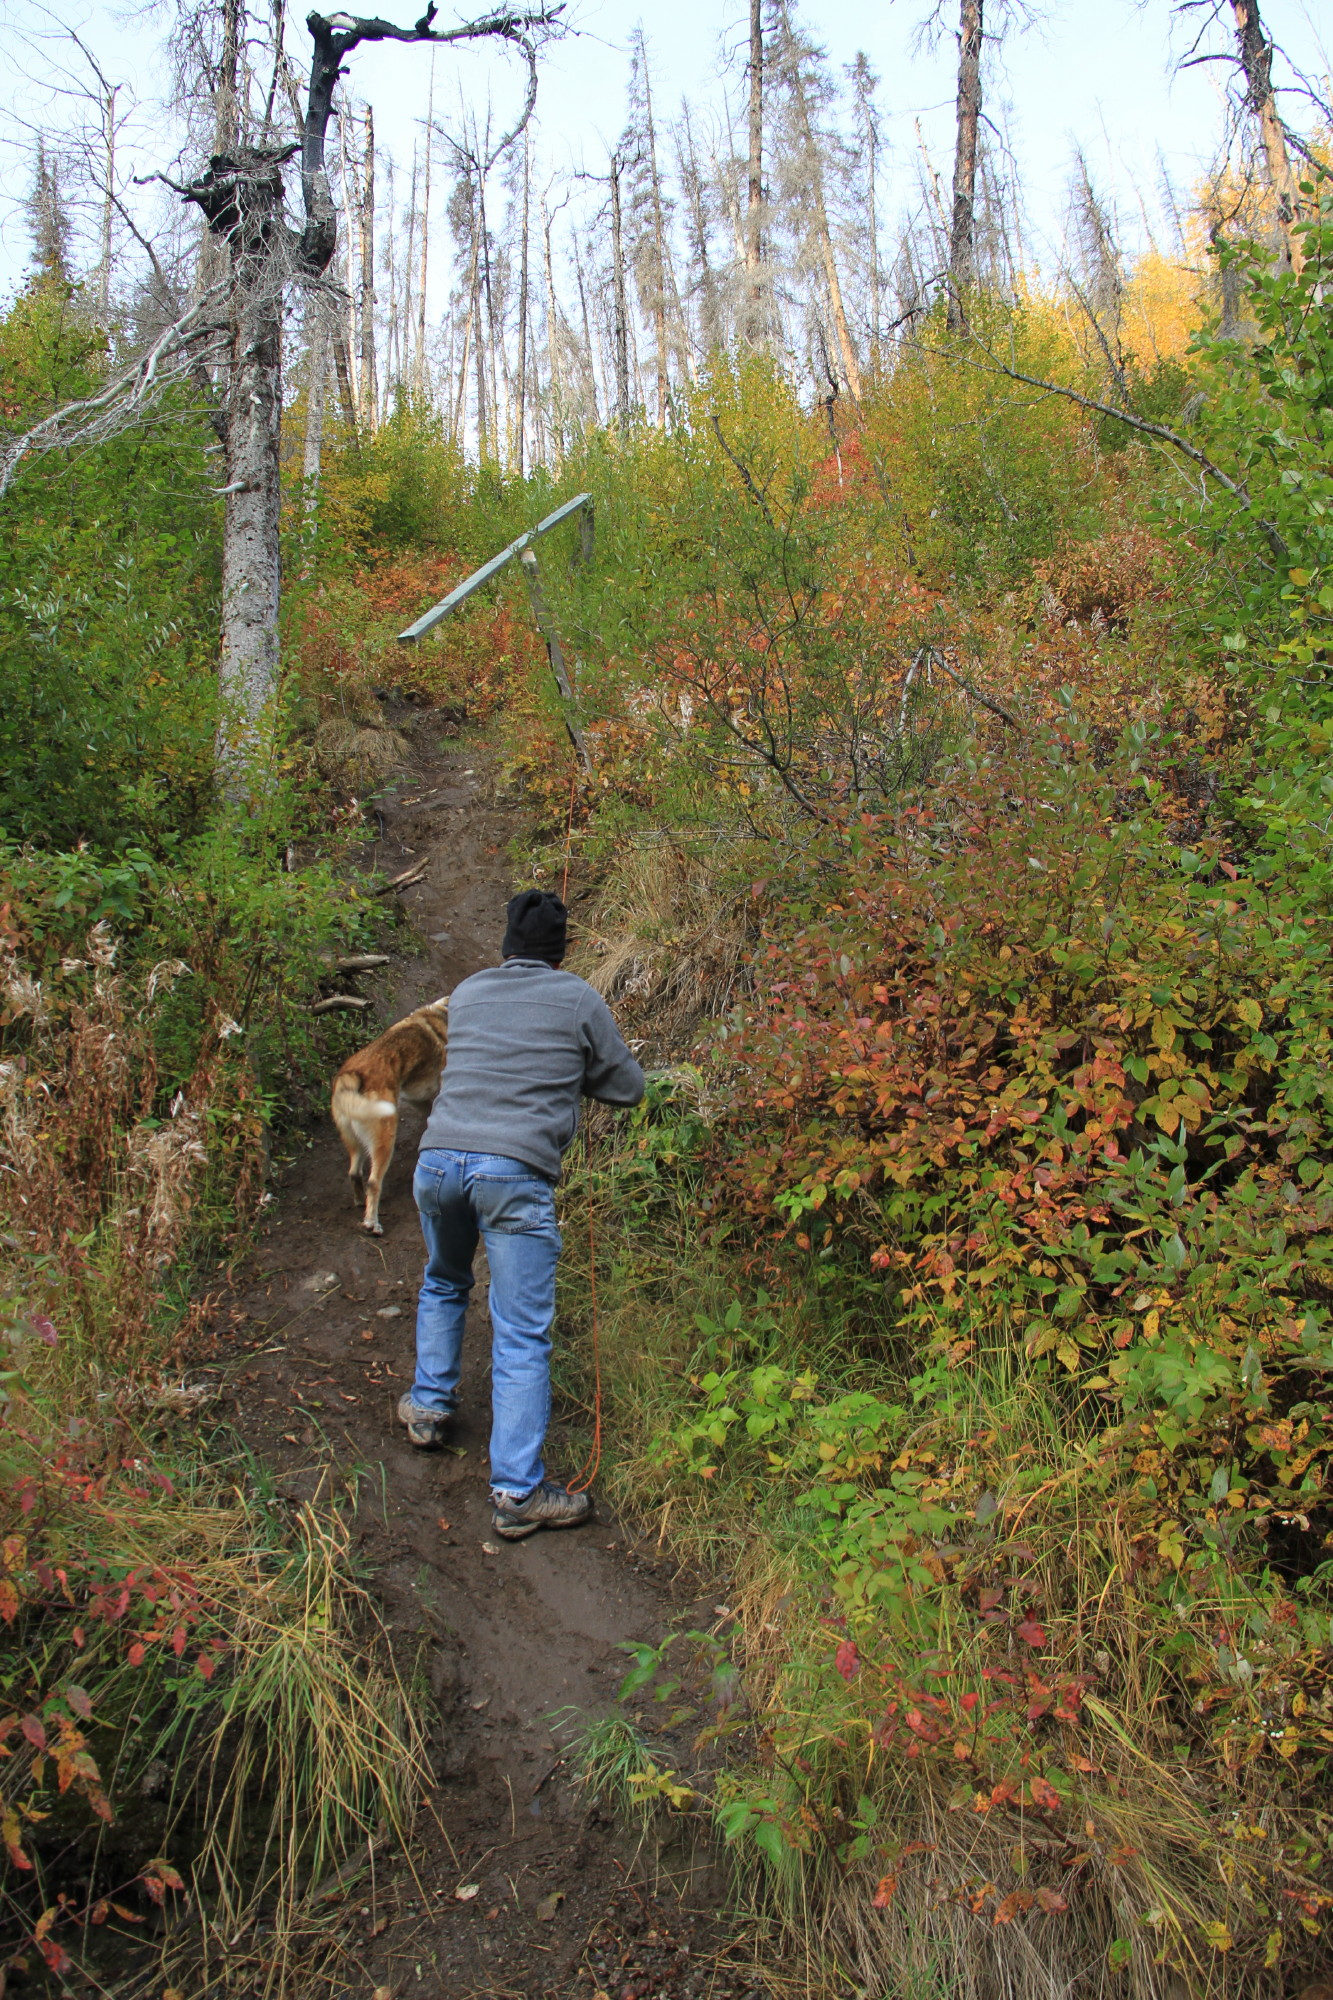 A man and his dog walk up a small hill overgrown with fall vegetation.